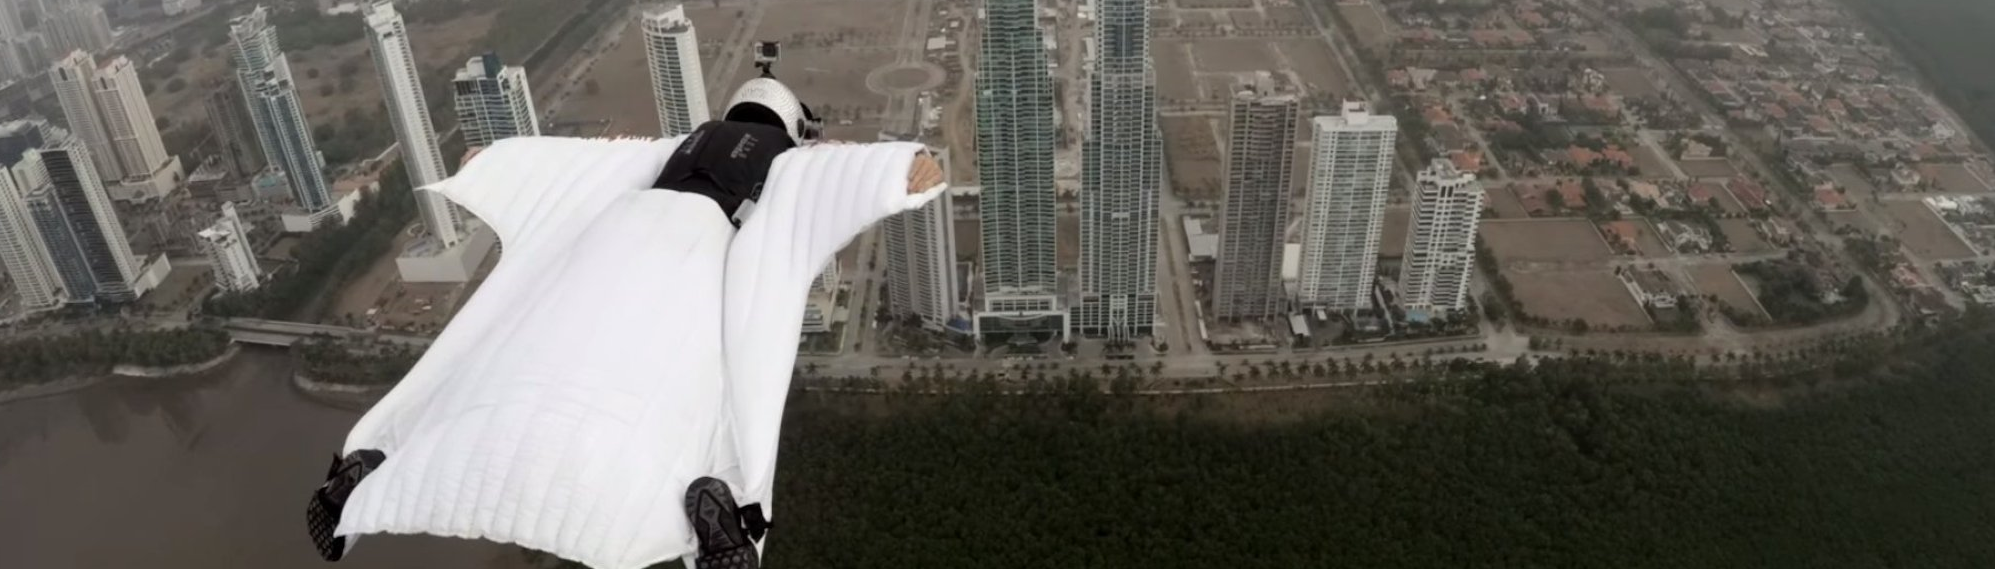 Italian model and daredevil Roberta Mancino is gaining quite the reputation in the world of extreme sports. Between the time that she spends swimming with sharks and skydiving around the world, she is beginning to create a rather large viral buzz. Her latest aerial stunt consists of flying in a wingsuit between two skyscrapers in Panama that was filmed as a promotion for GoPro.